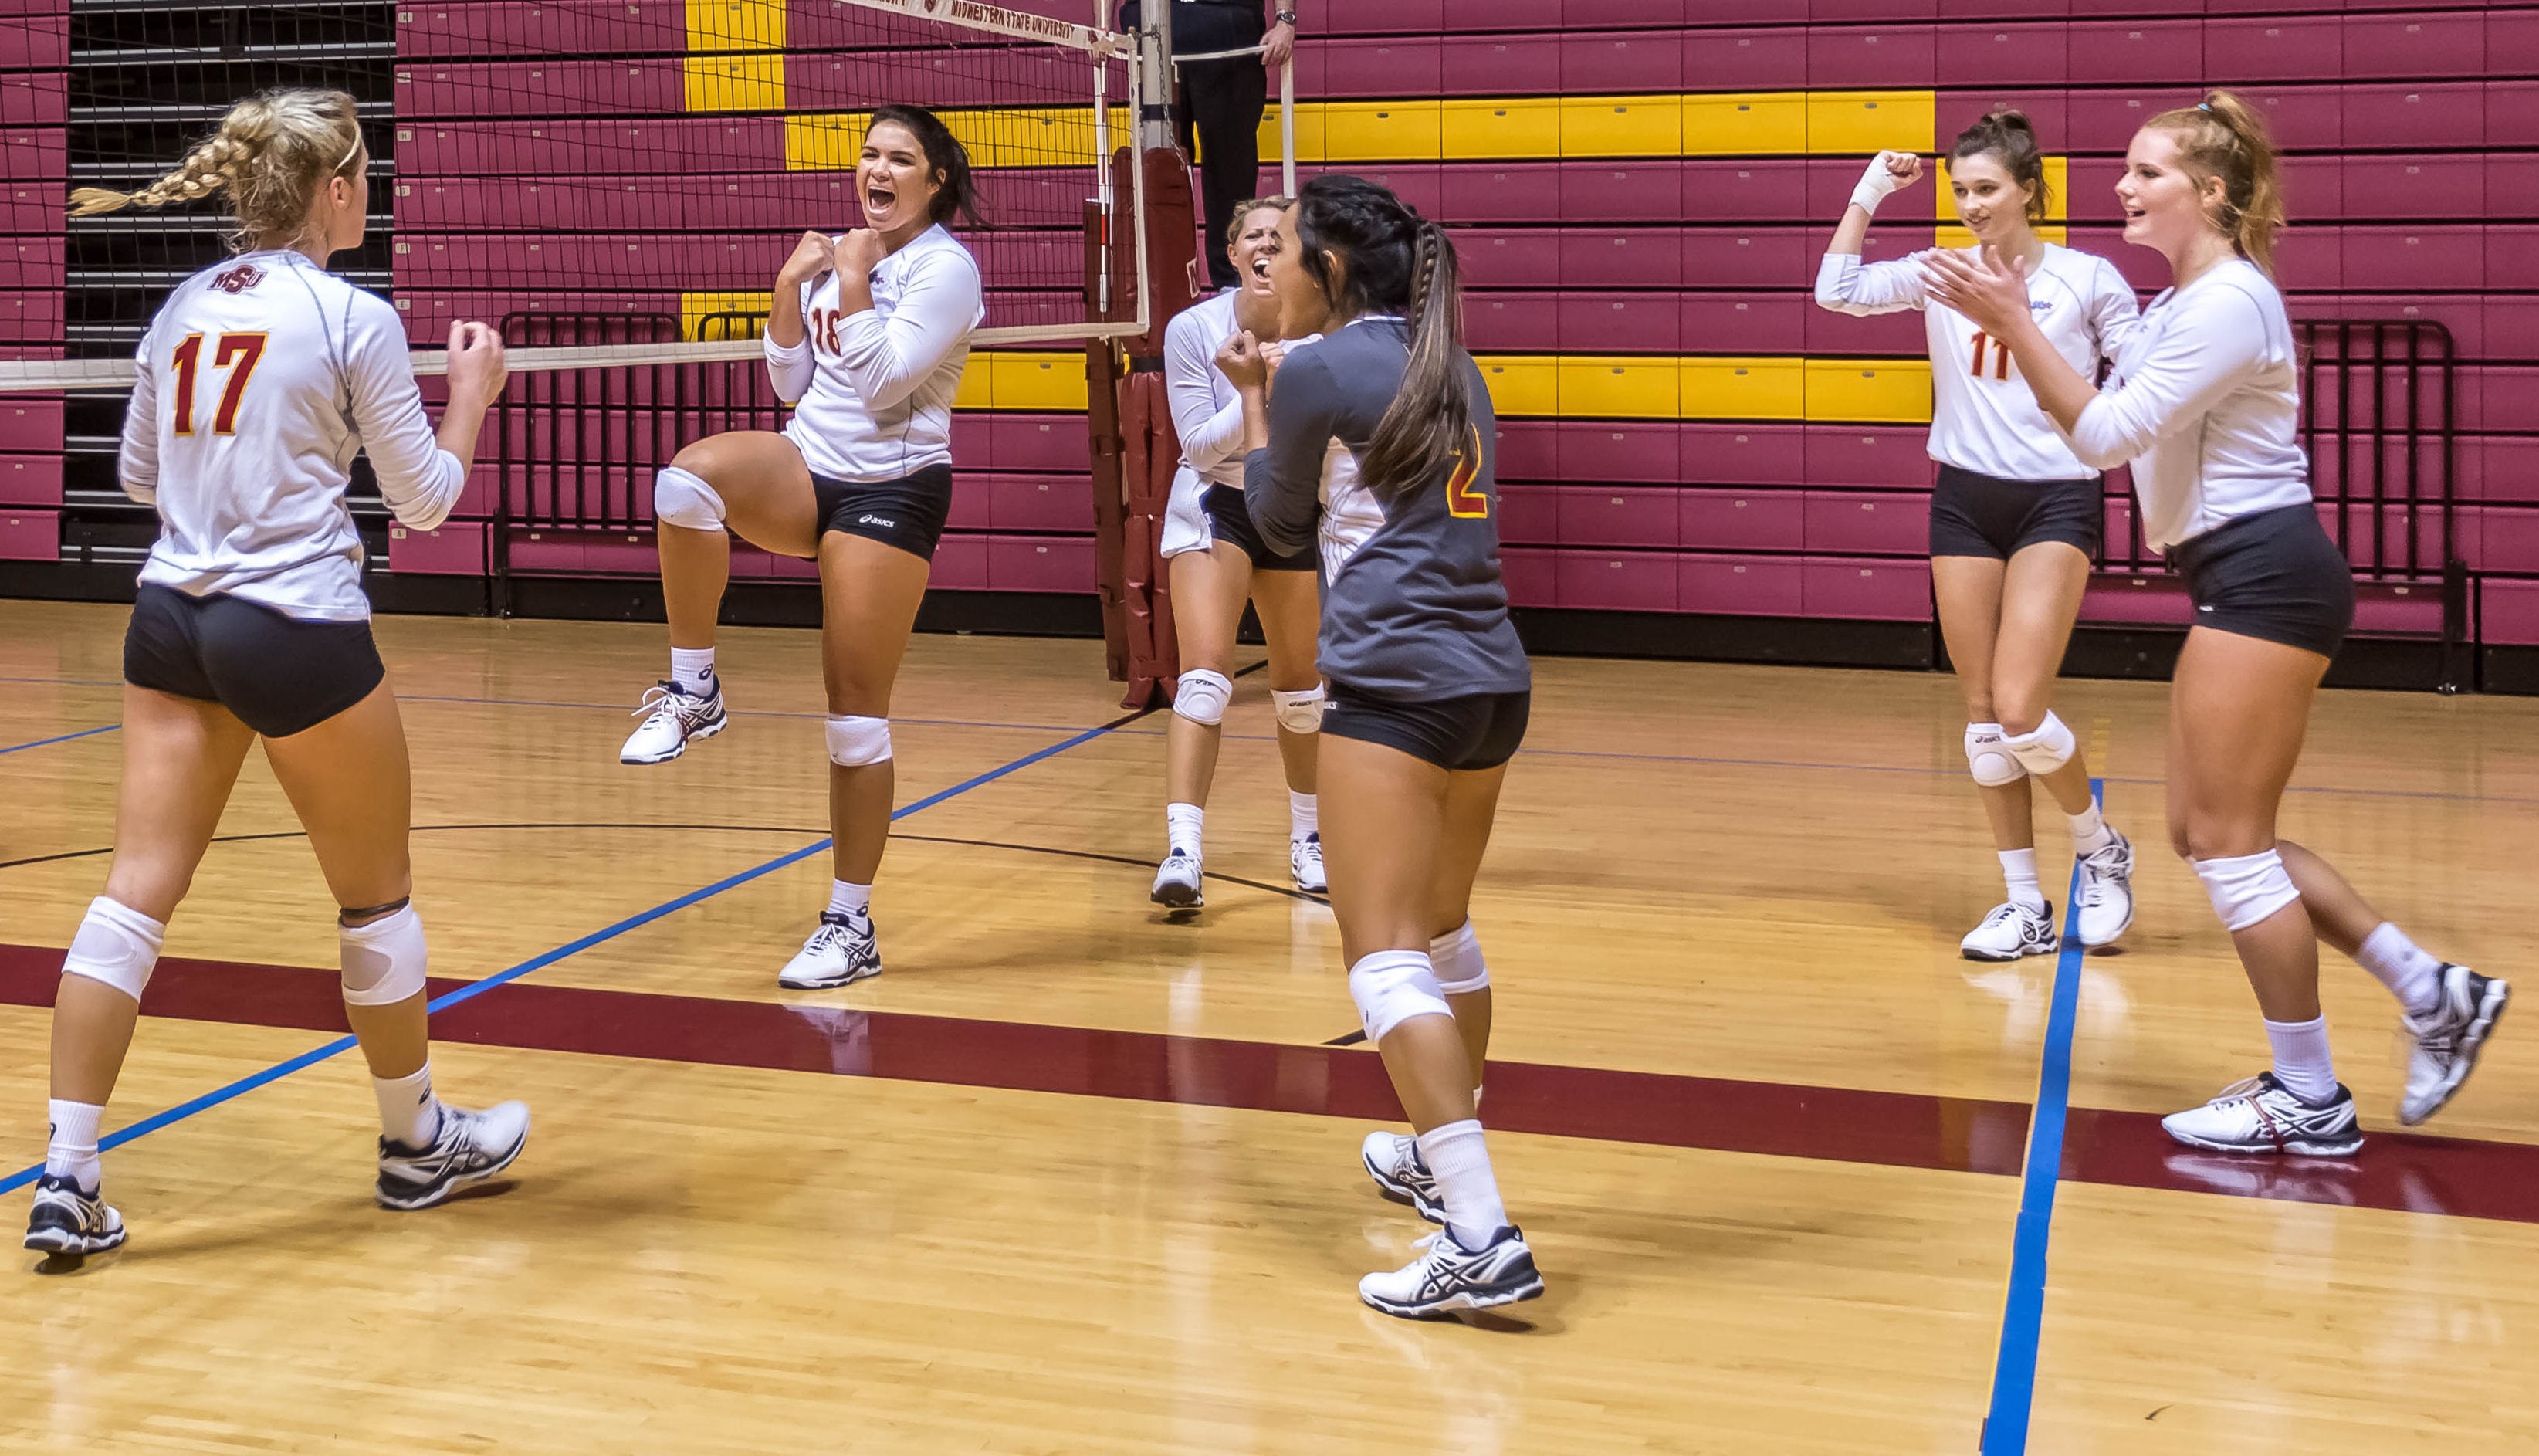 Volleyball team goes 2-0 in Friday's tournament